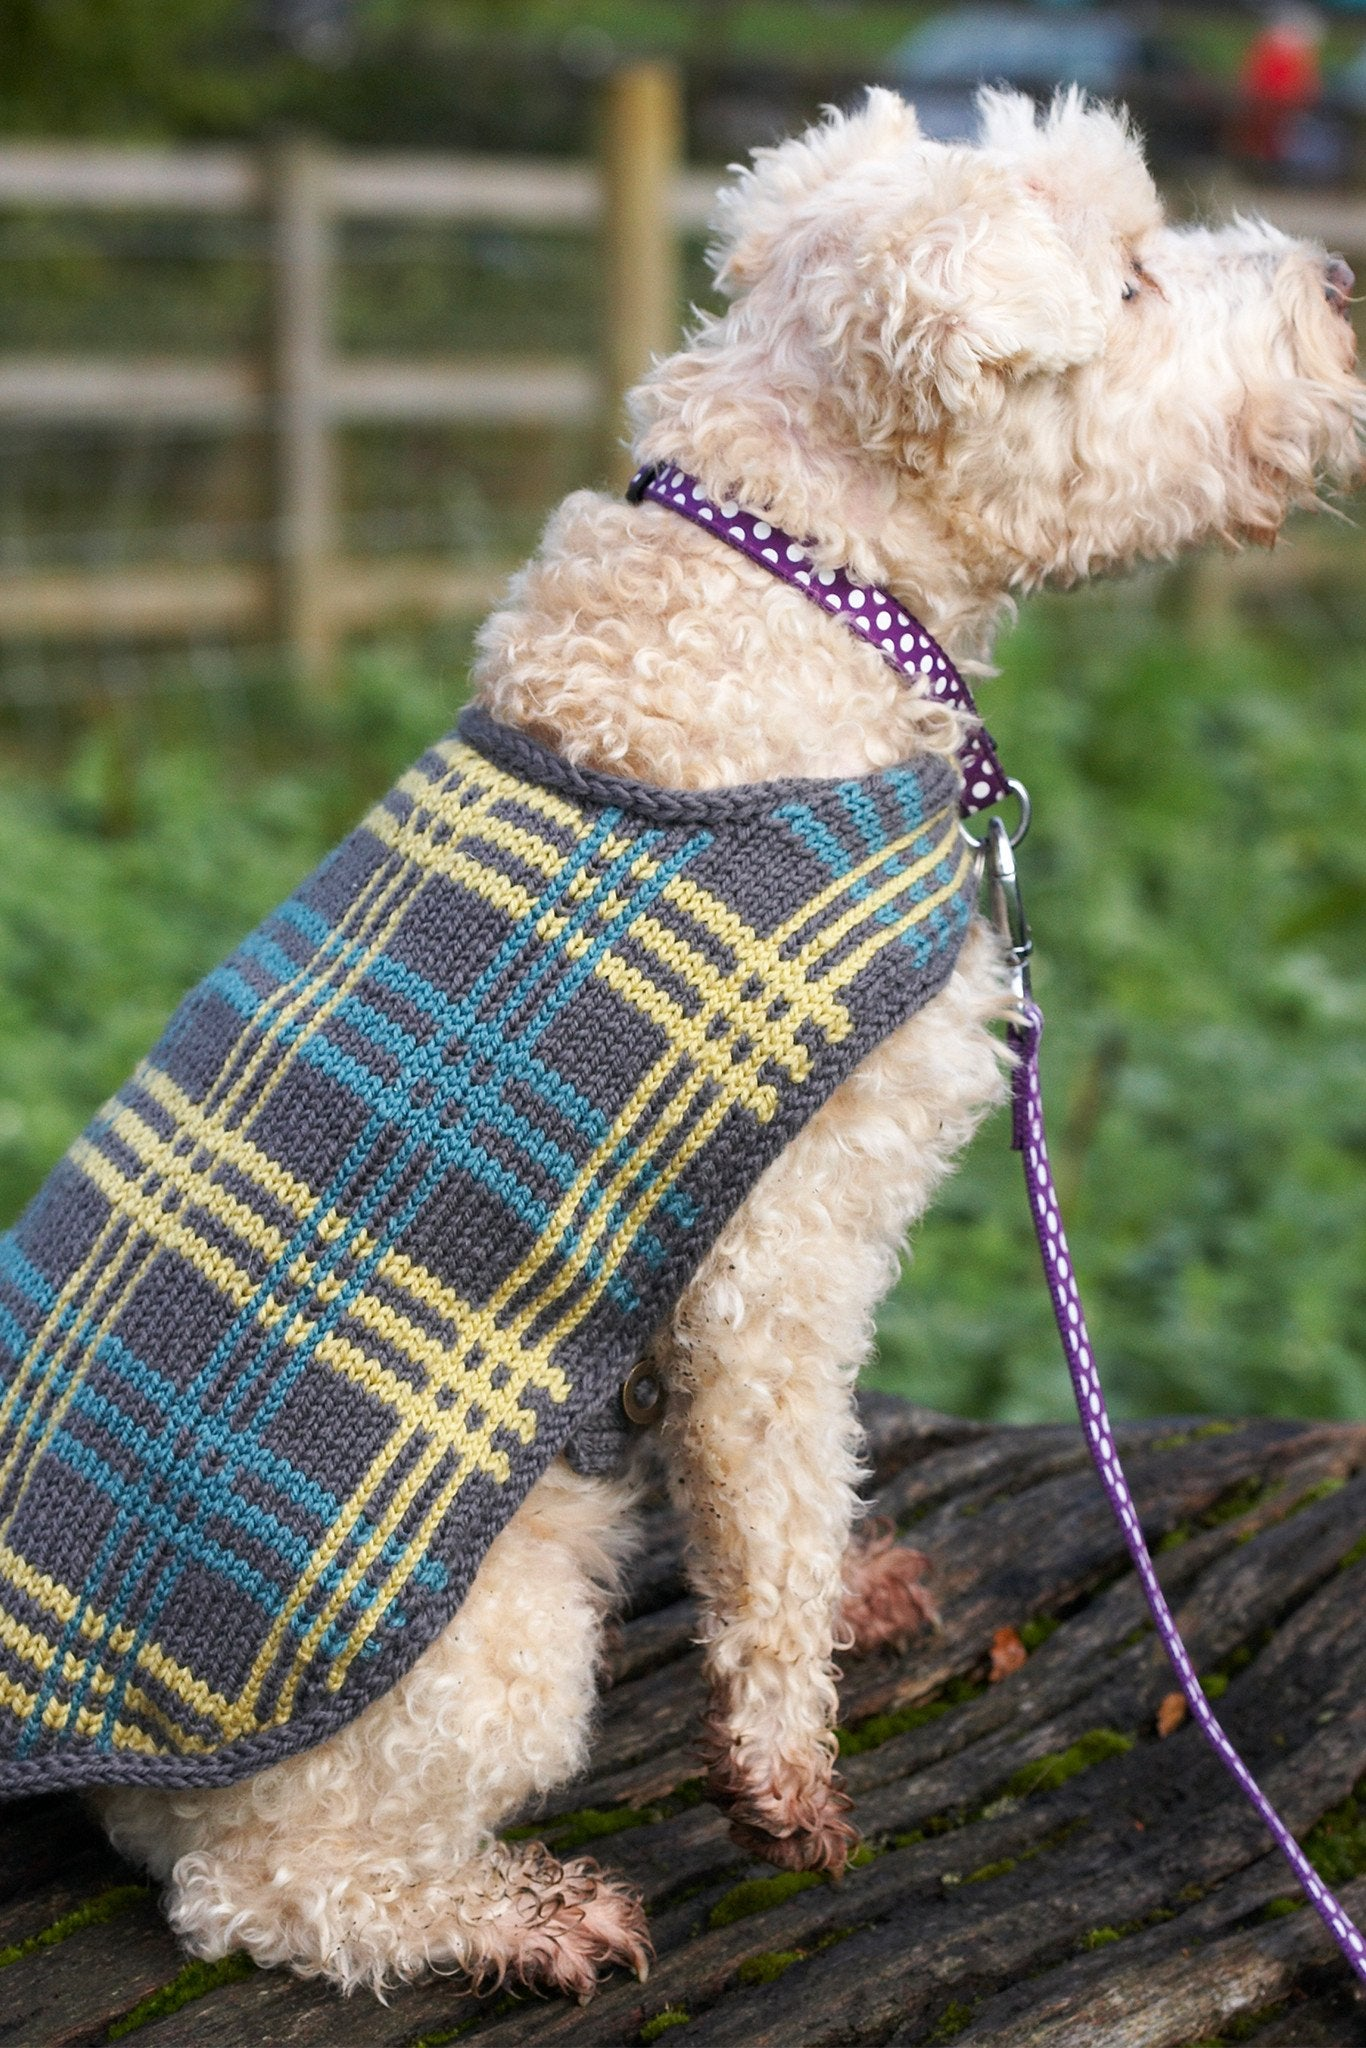 Dog Coat Knitting Pattern Uk : Vintage dog coat with plaid design knitting pattern the